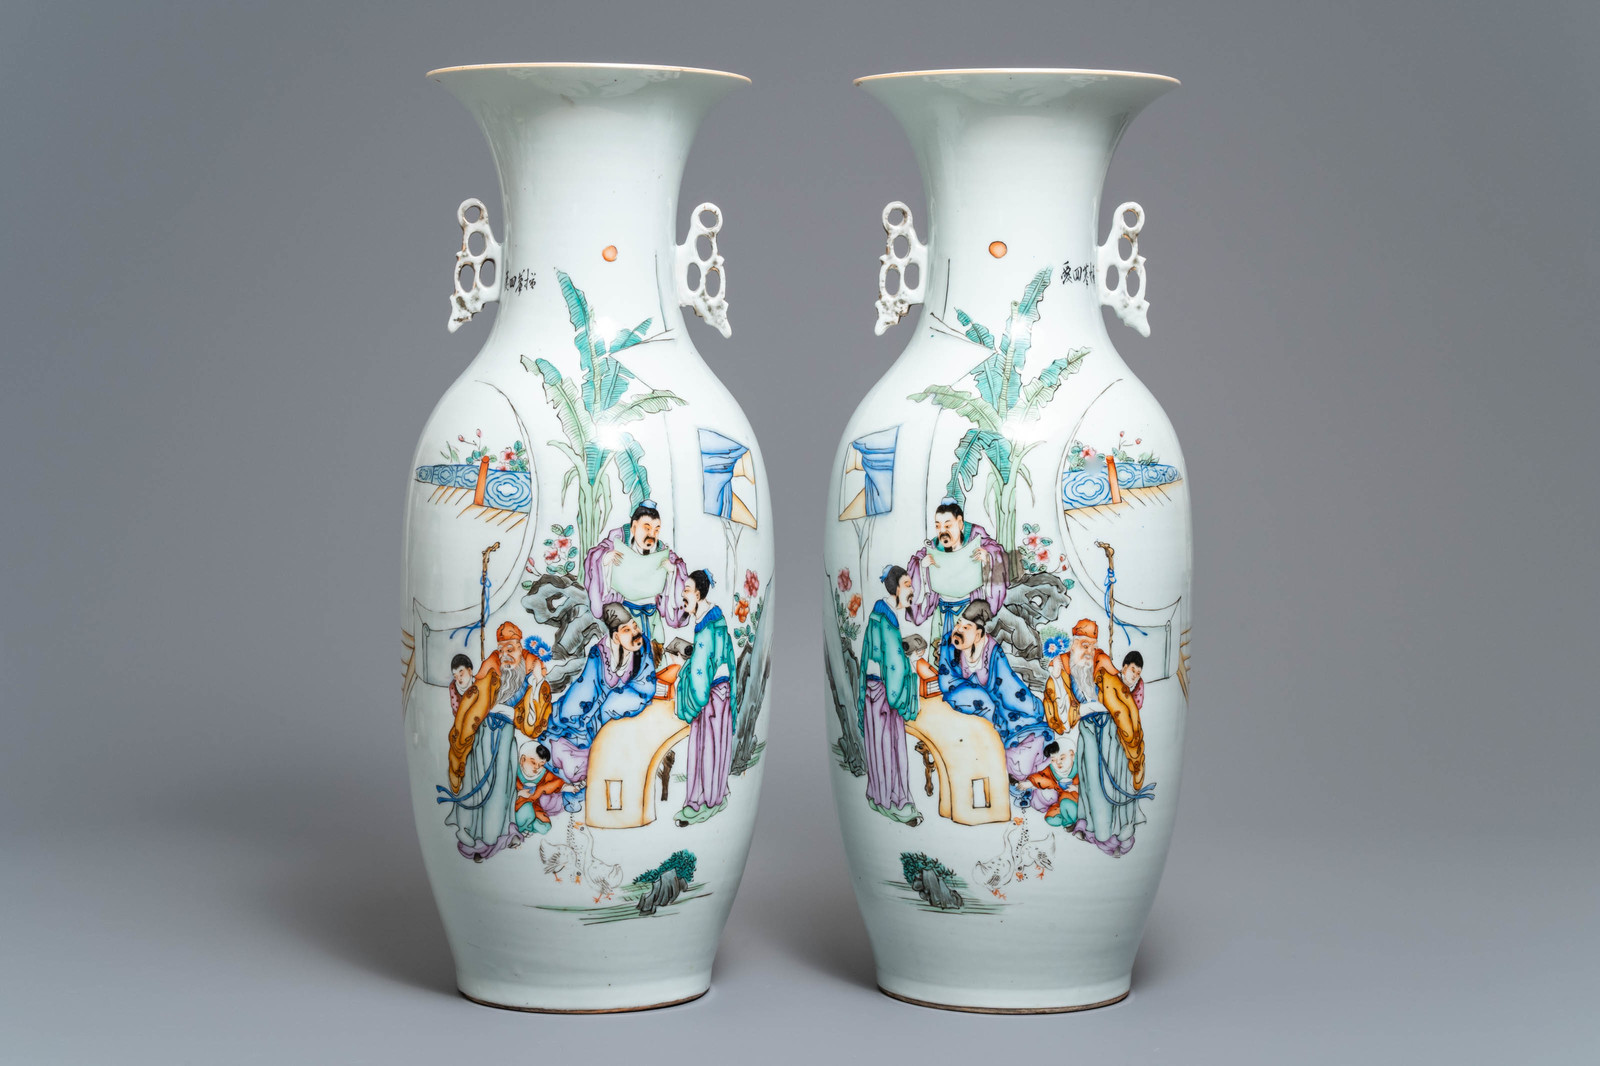 Lot 33 - A pair of Chinese famille rose vases with scholars in a garden, 19/20th C.